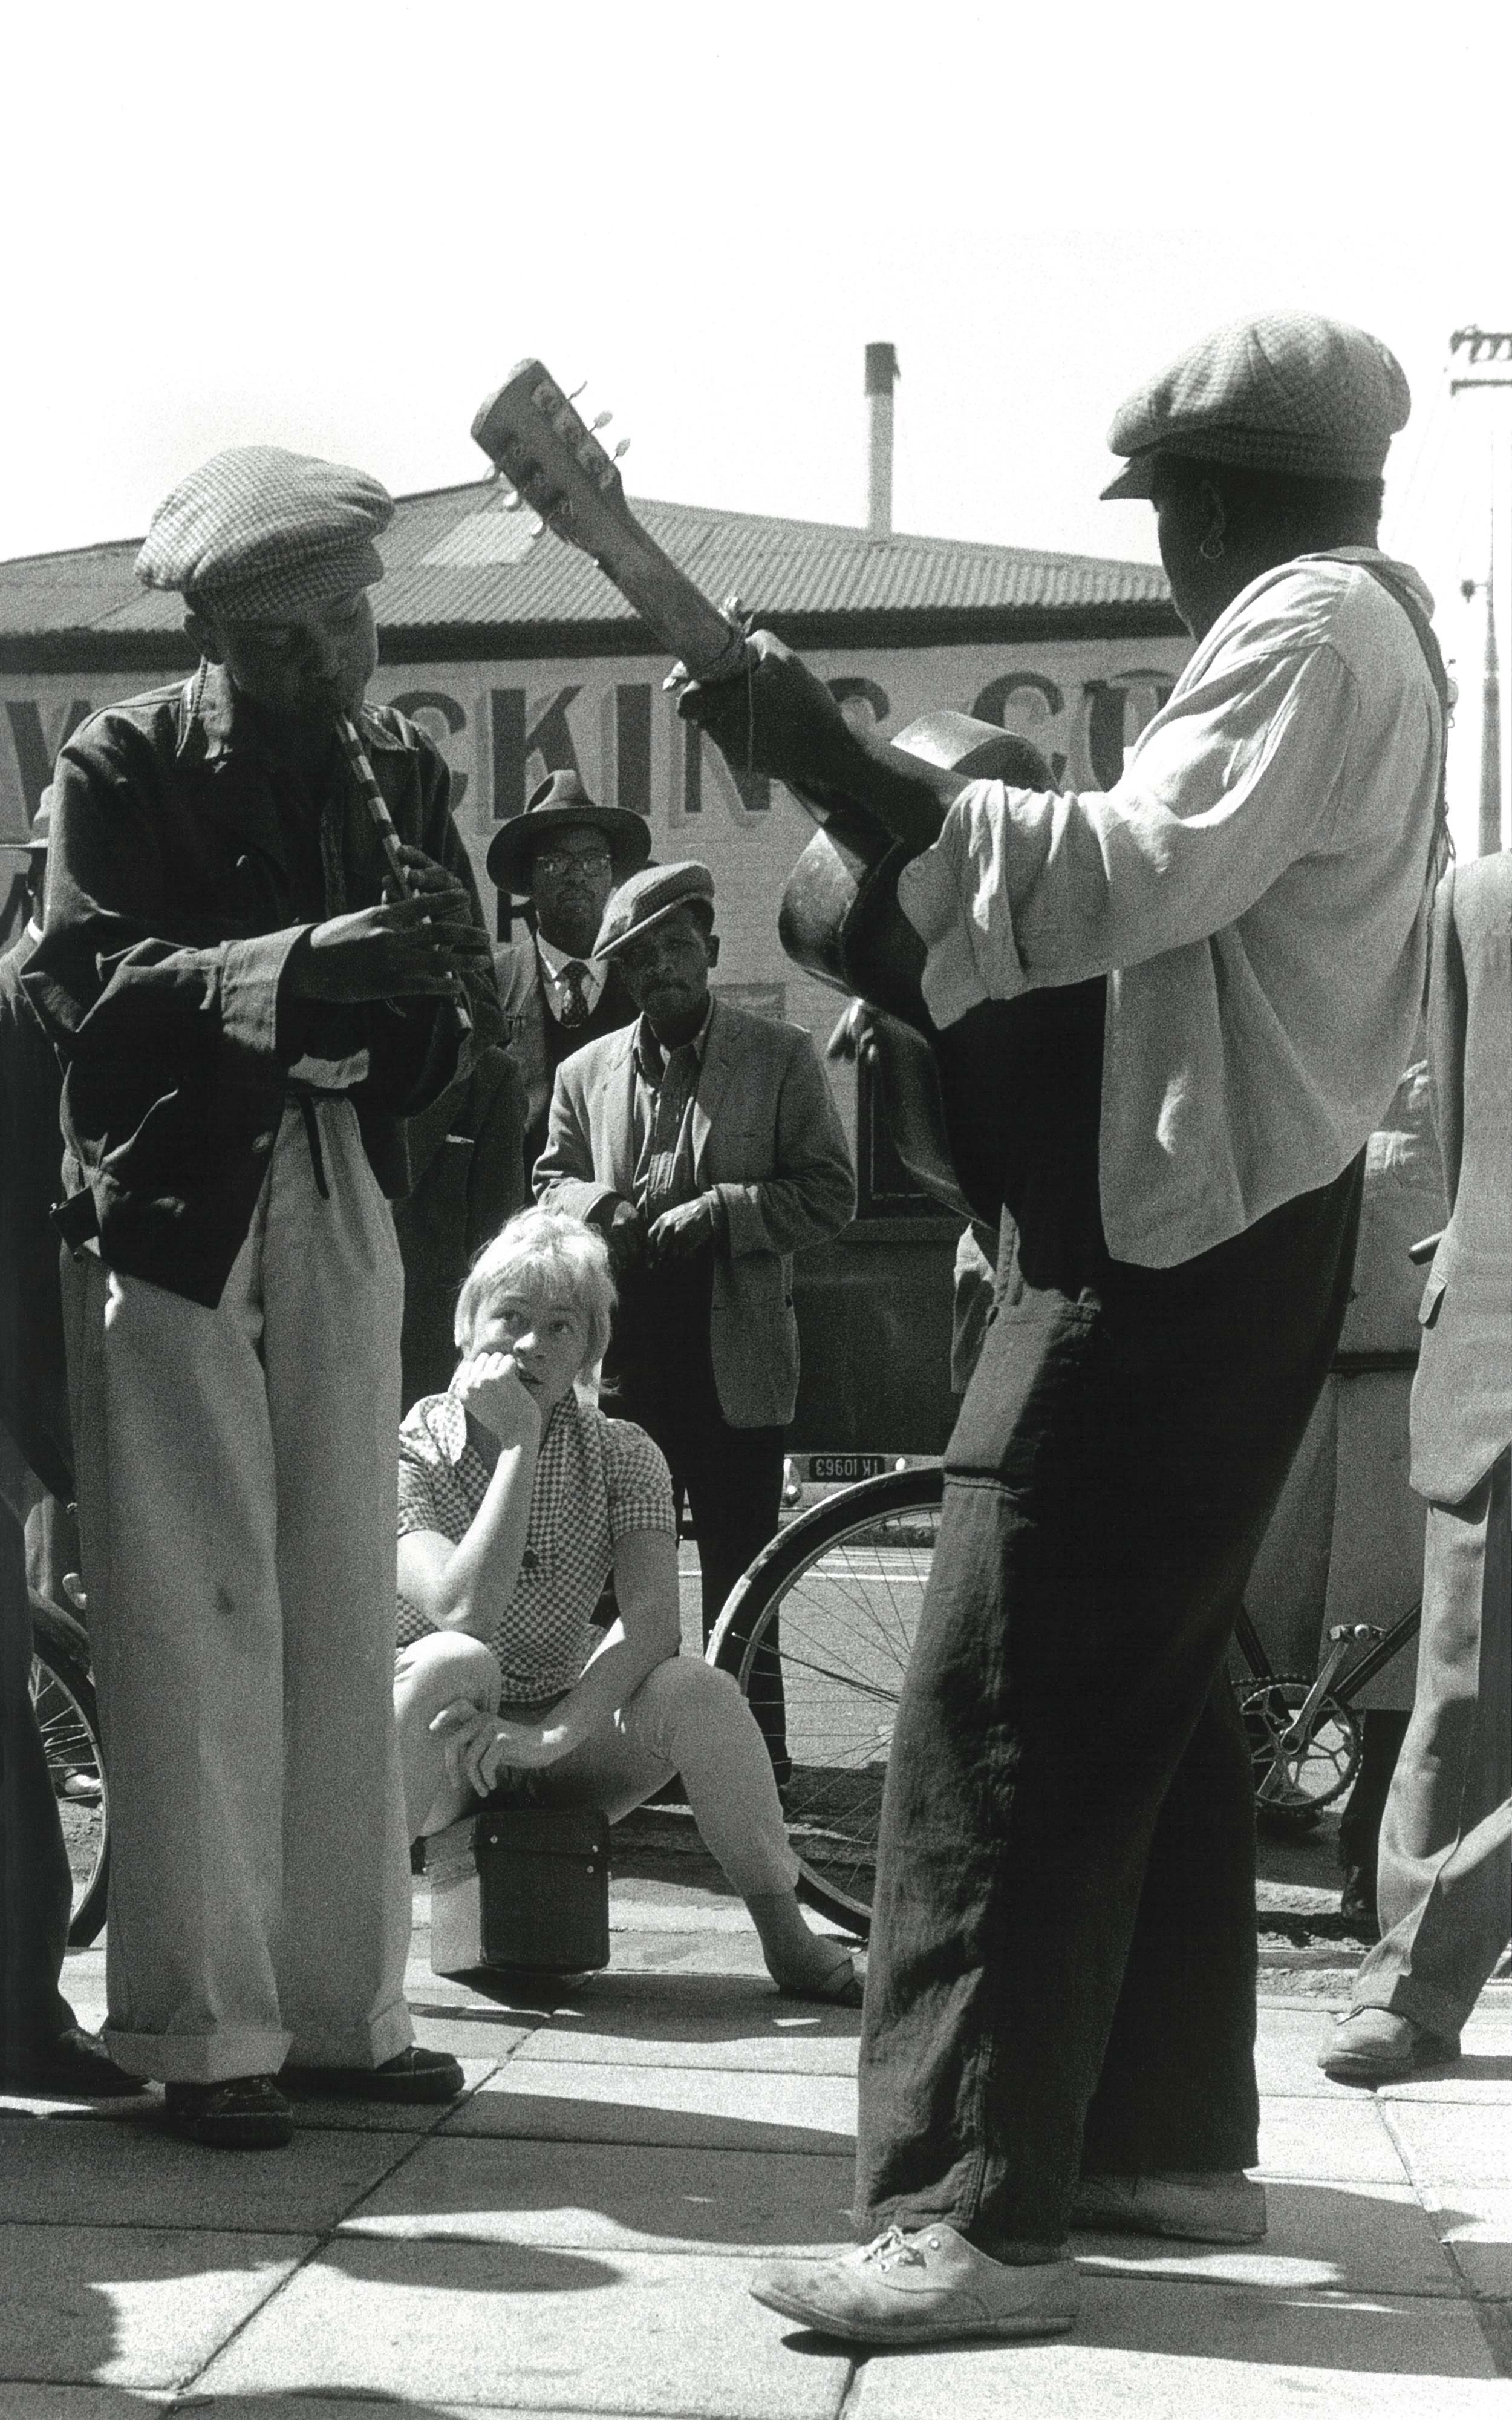 1957 – Music on the streets of Johannesburg. Corner of Main Street and Commissioner Street.   Courtesy of the Estate of John Goldblatt